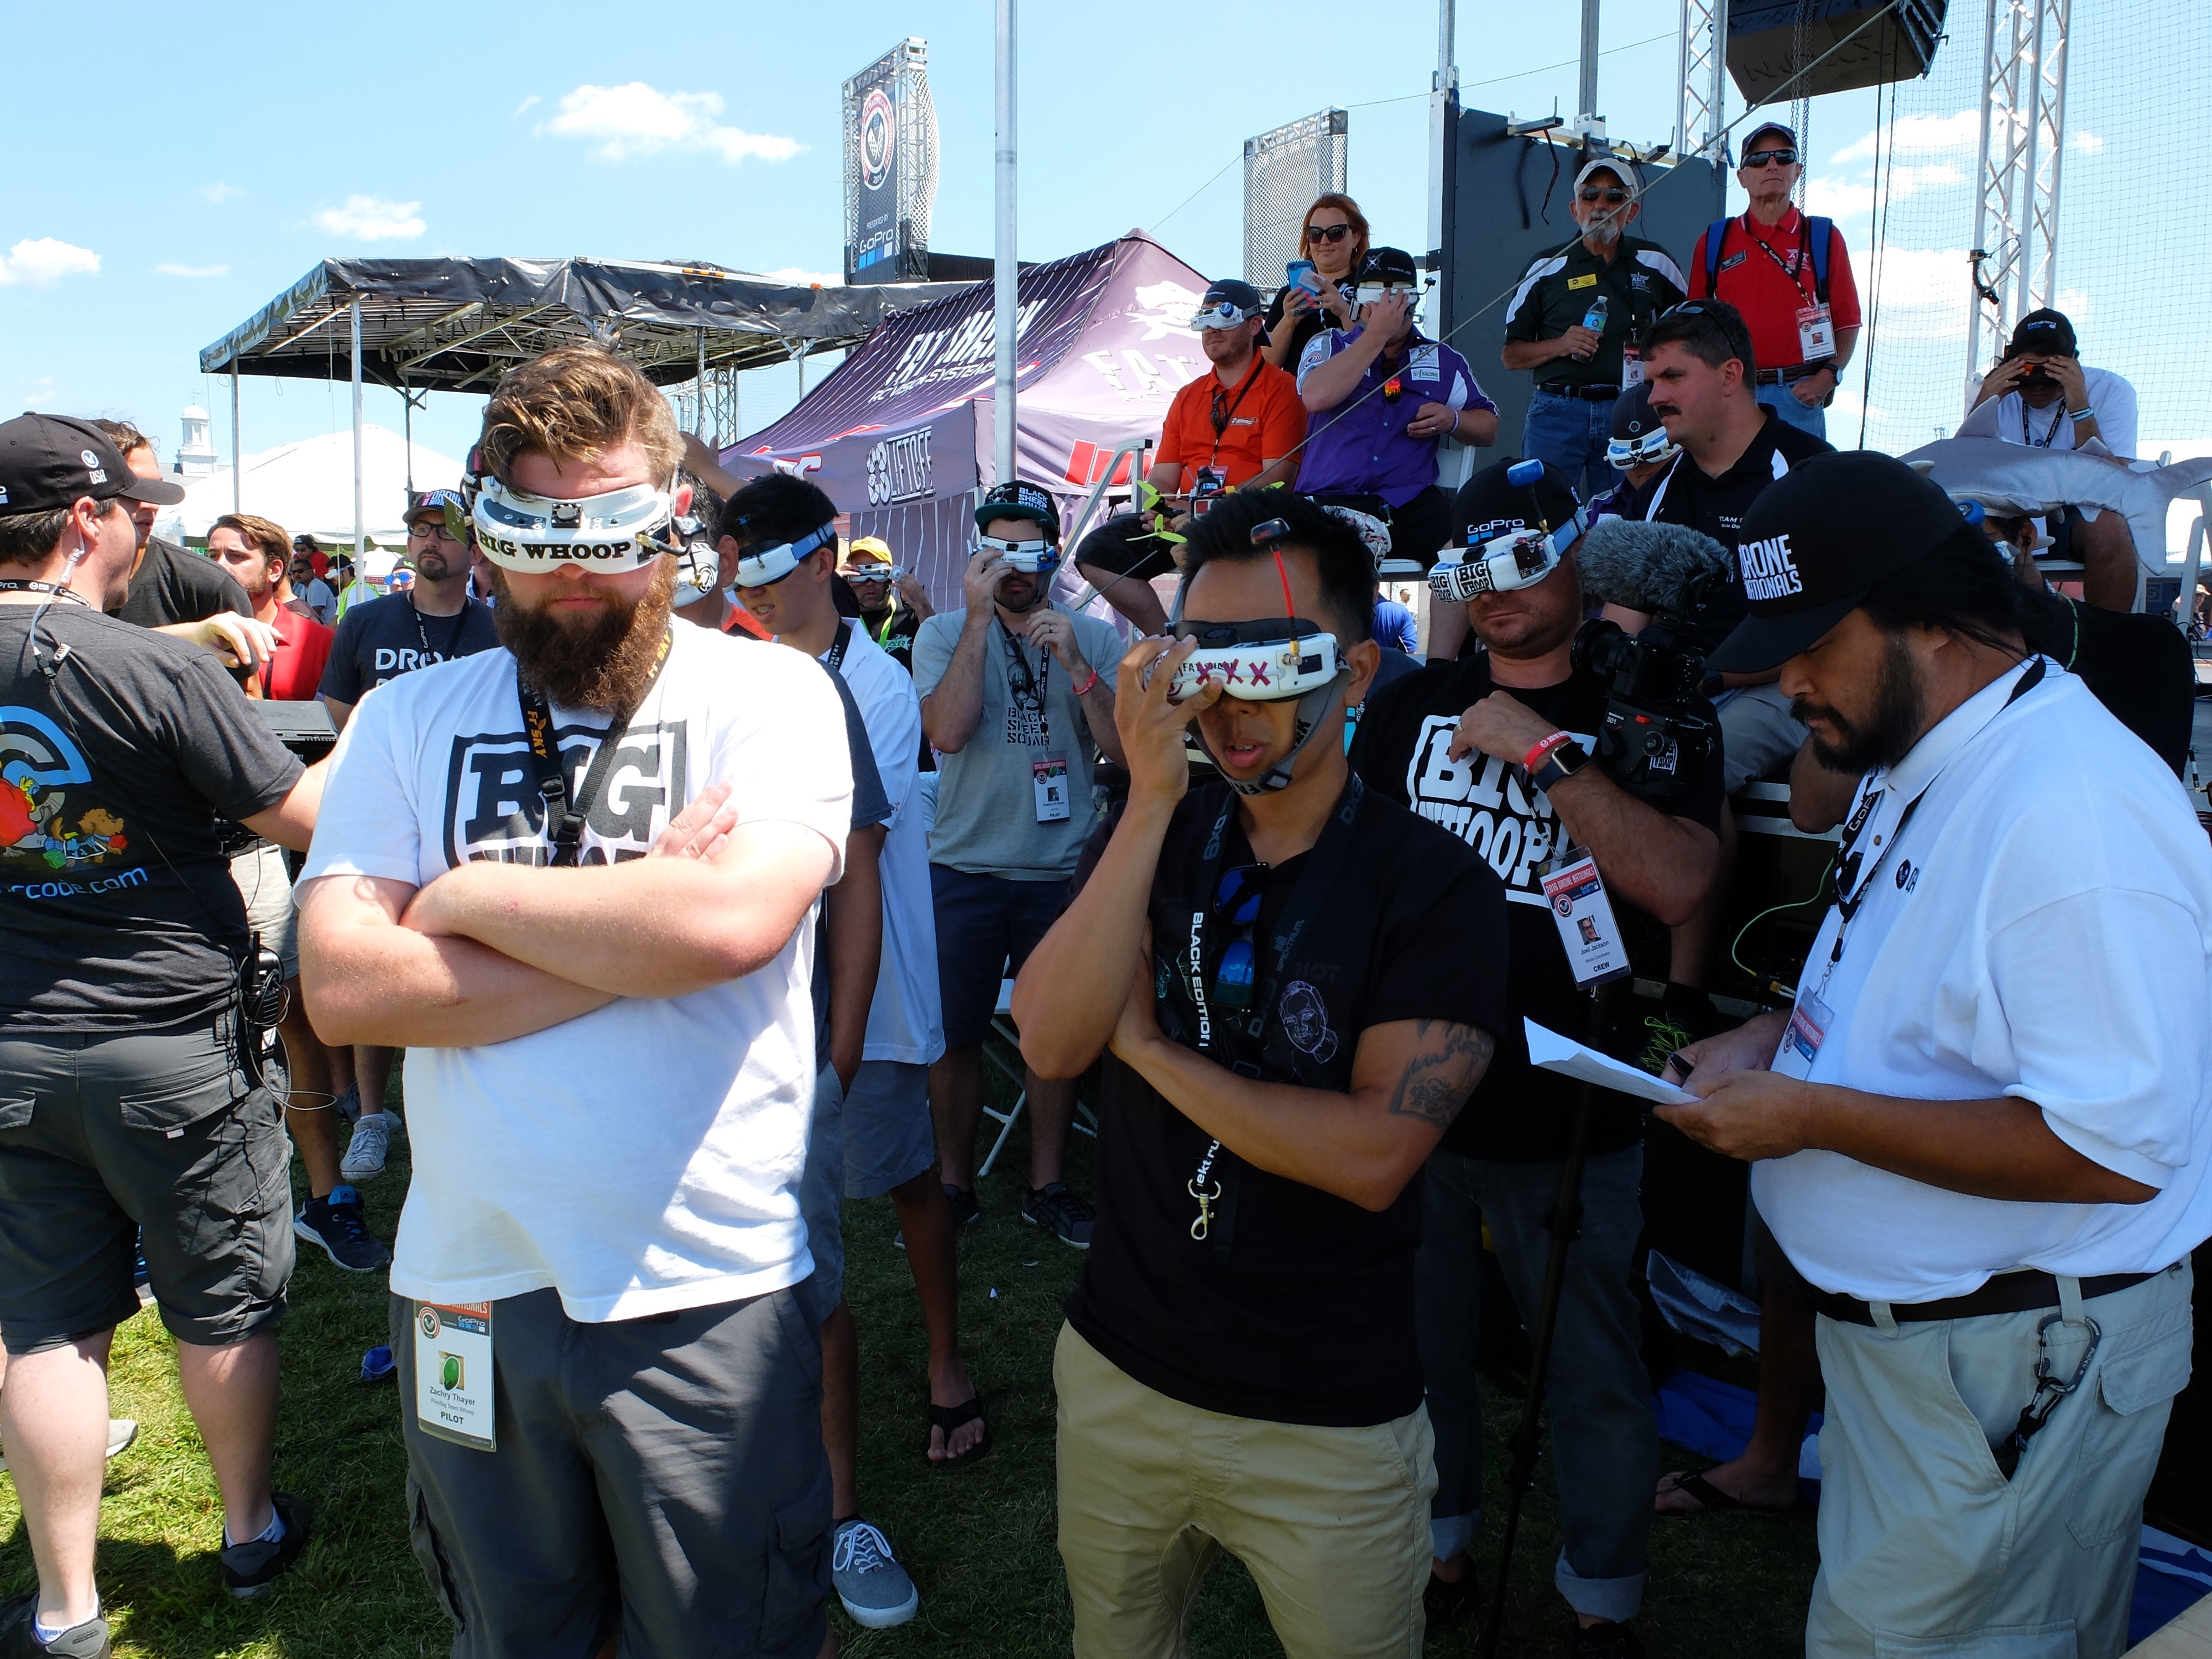 Pilots watching through FPV goggles.